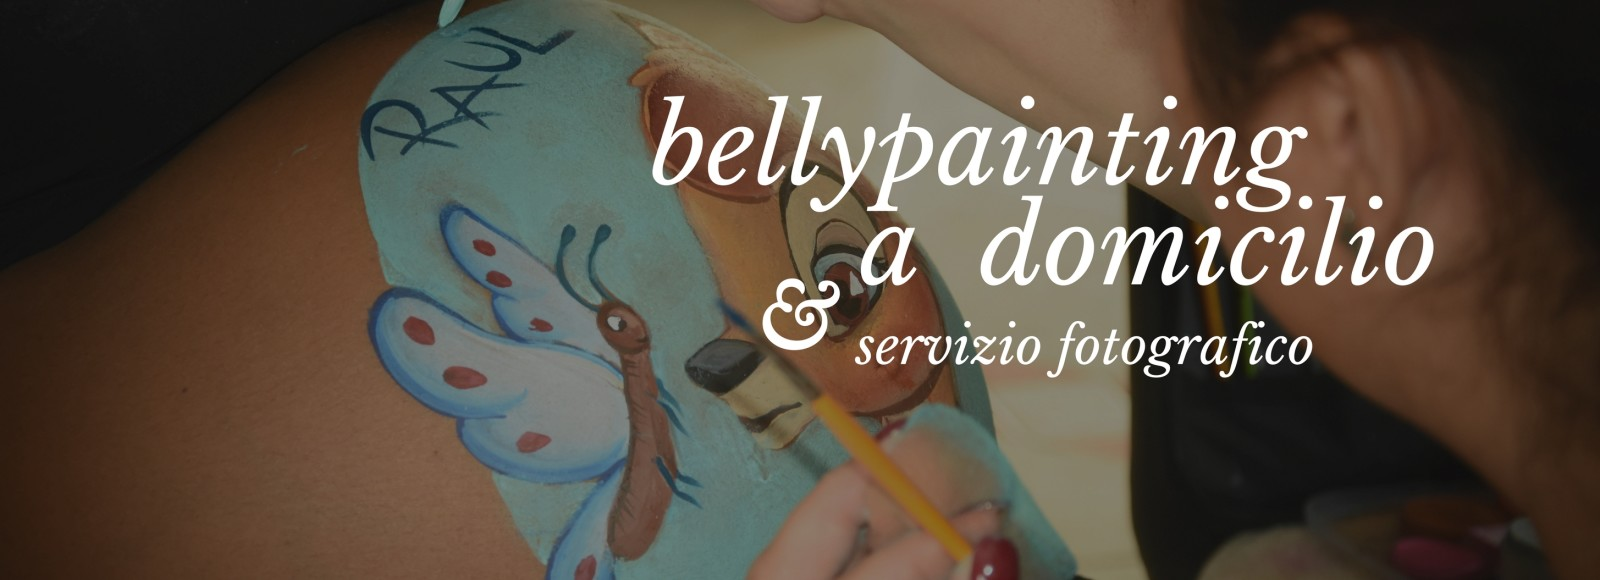 belly painting Roma